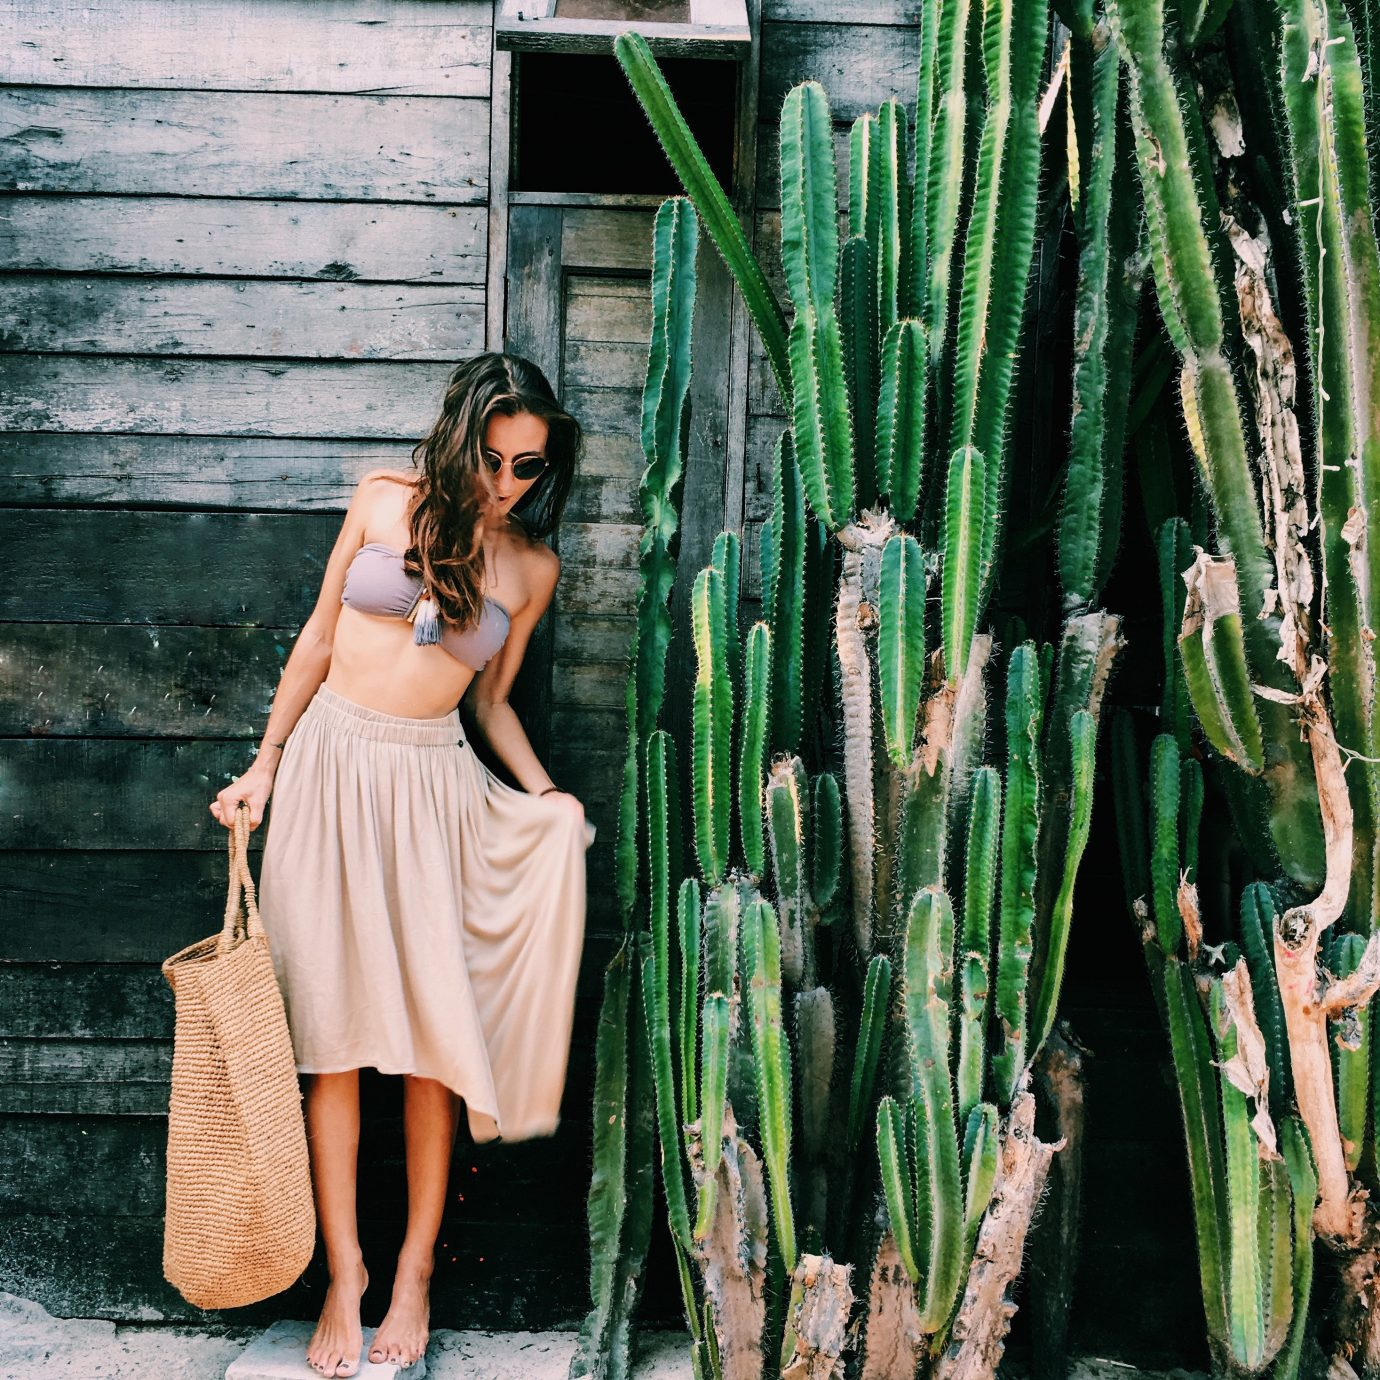 Style + Design outdoor person green cellphone standing cactus girl plant hedgehog cactus tree